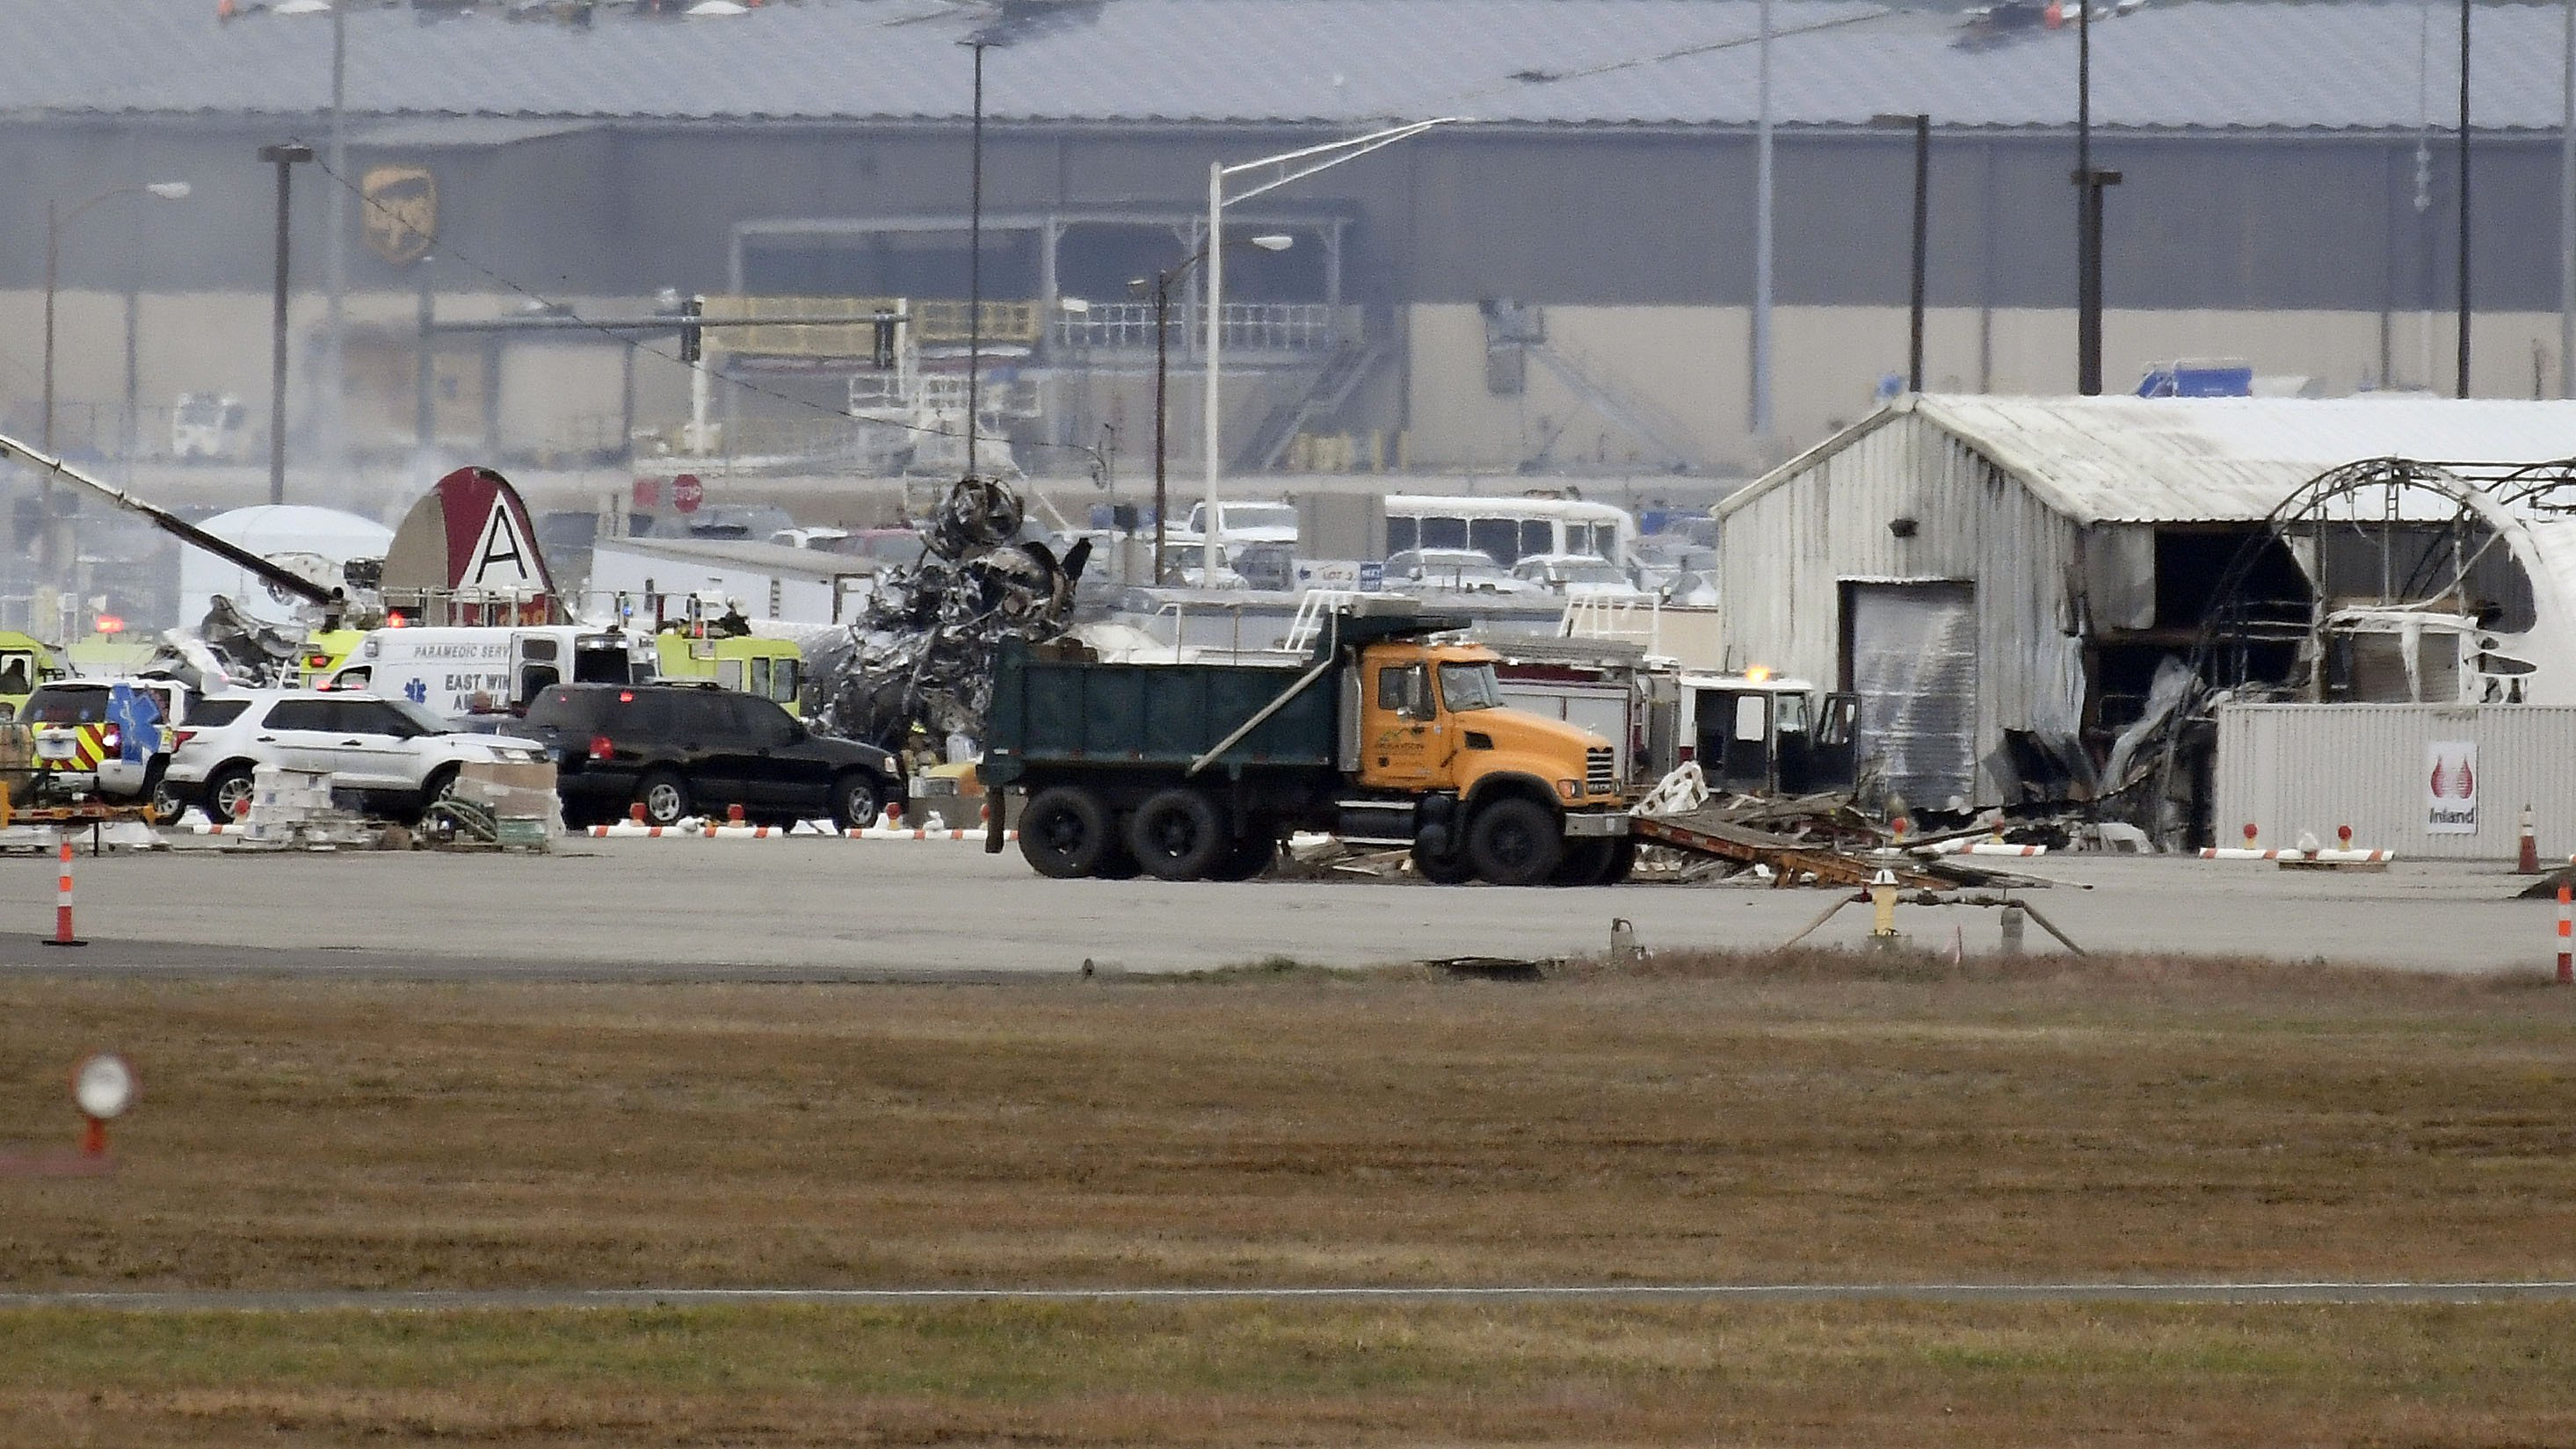 The Latest: Fatalities confirmed in vintage plane crash